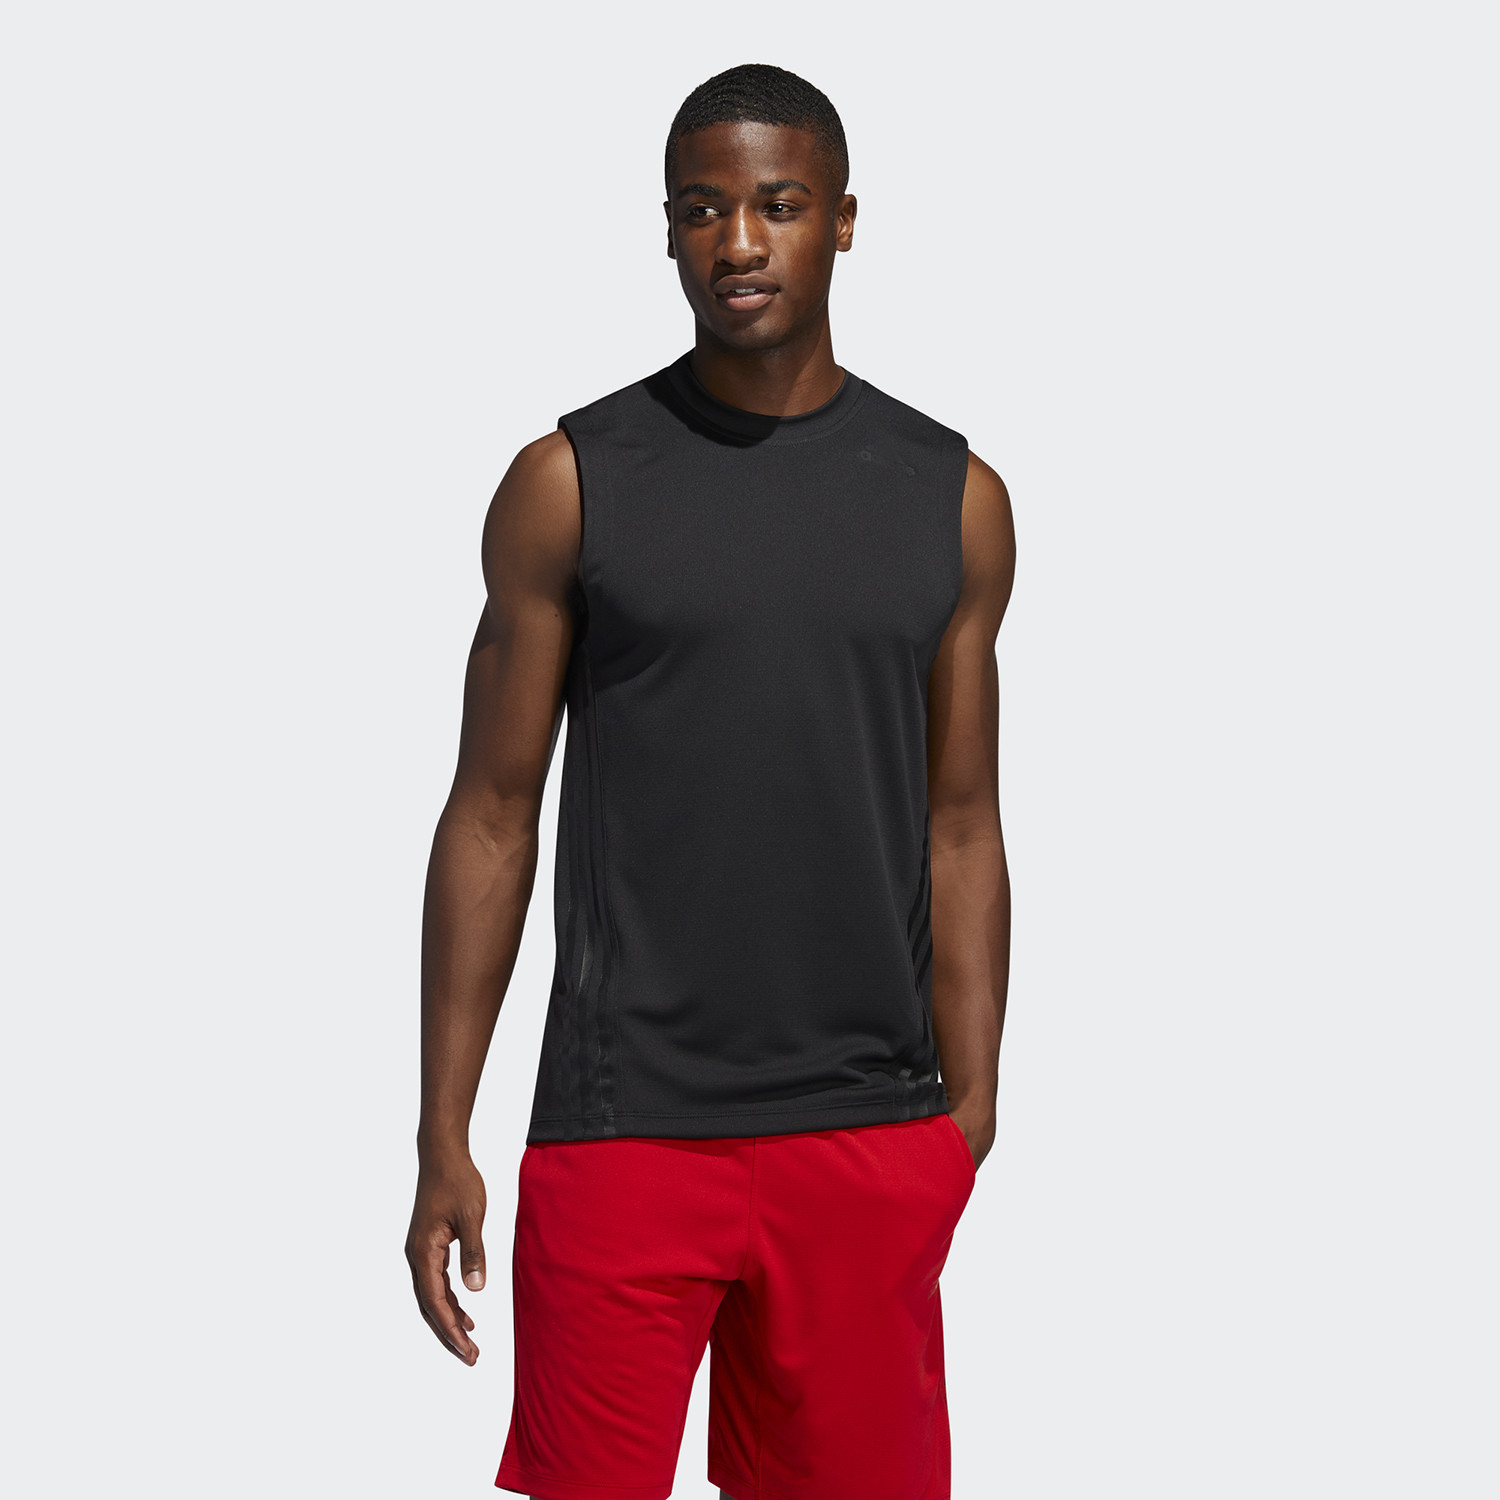 adidas AEROREADY 3-Stripes Tank Top (9000045263_1469)